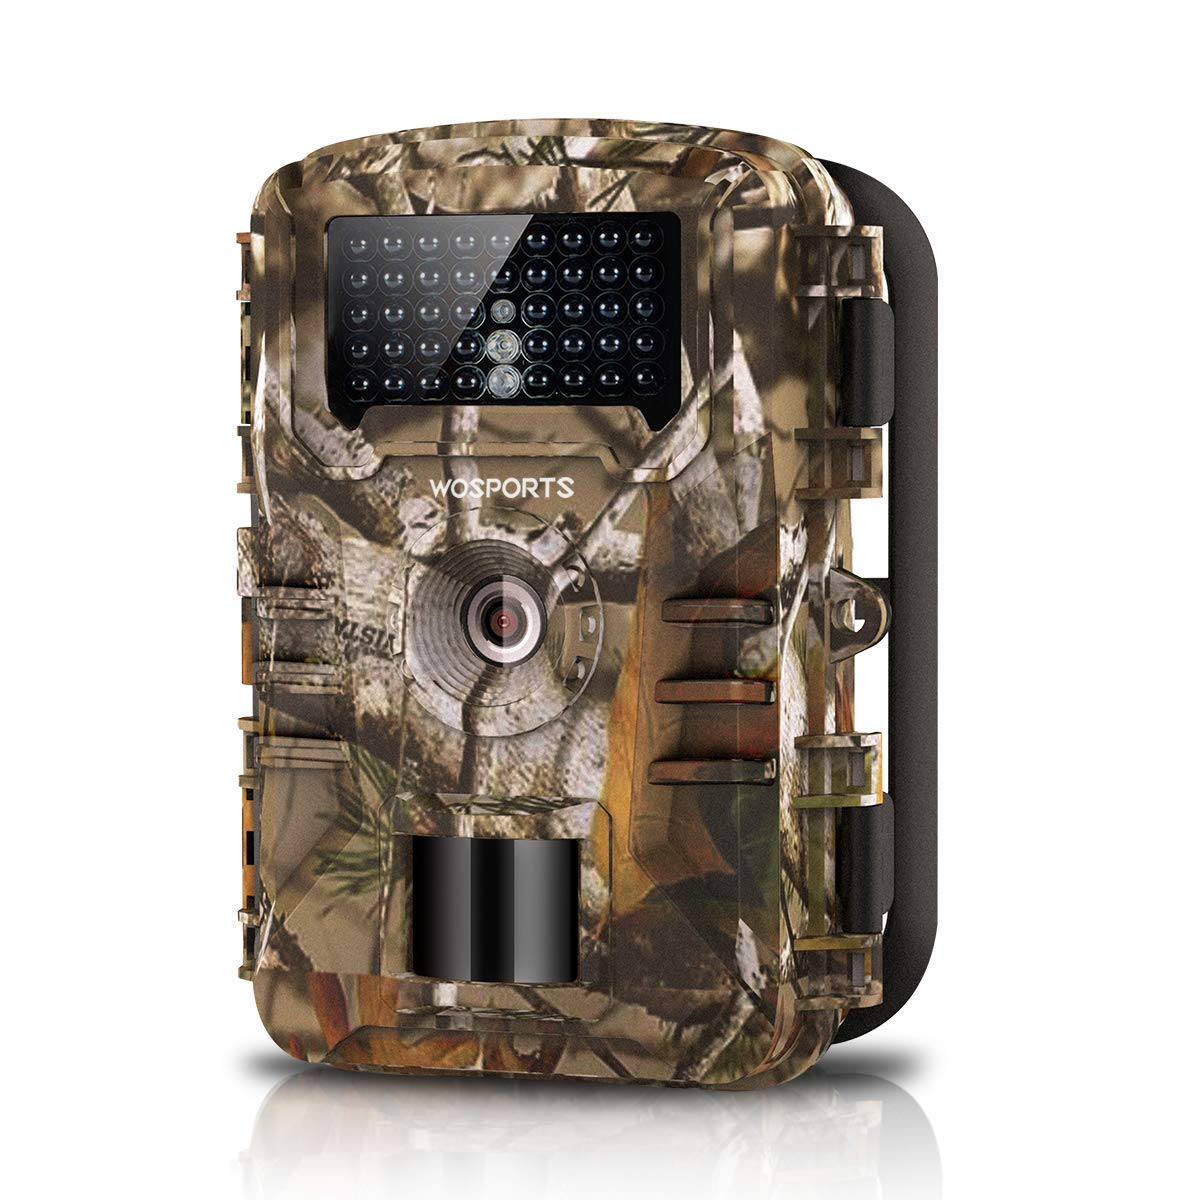 WOSPORTS Trail Camera Full HD 1080P Hunting Game Camera, 940nm Motion Activated Night Vision 65ft, Waterproof Scouting Cam 2.4'' Wireless Video Camera for Wildlife Monitoring/Home Security,88E by WOSPORTS